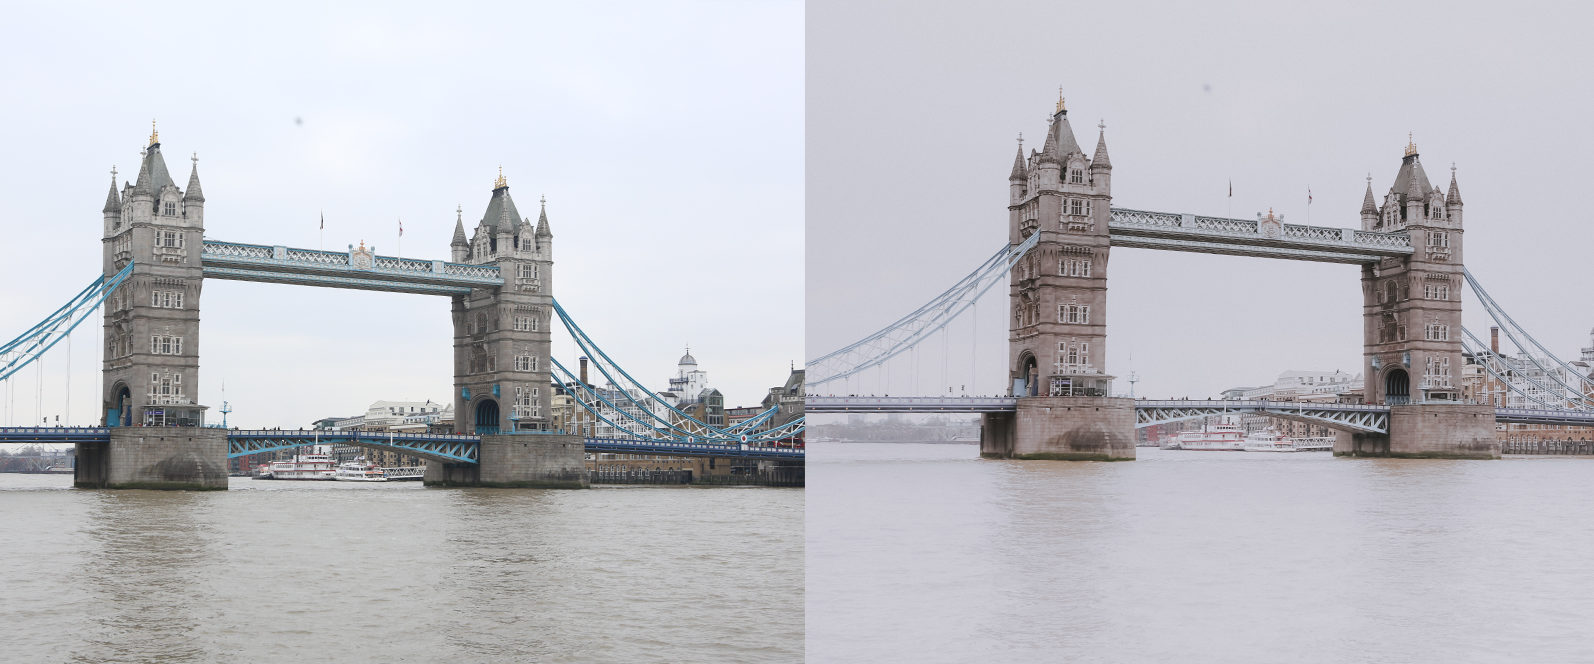 BUNDLE /// 03_Travel Collection // 97 x Desktop and Mobile Presets - 2 Timeless London 1 -